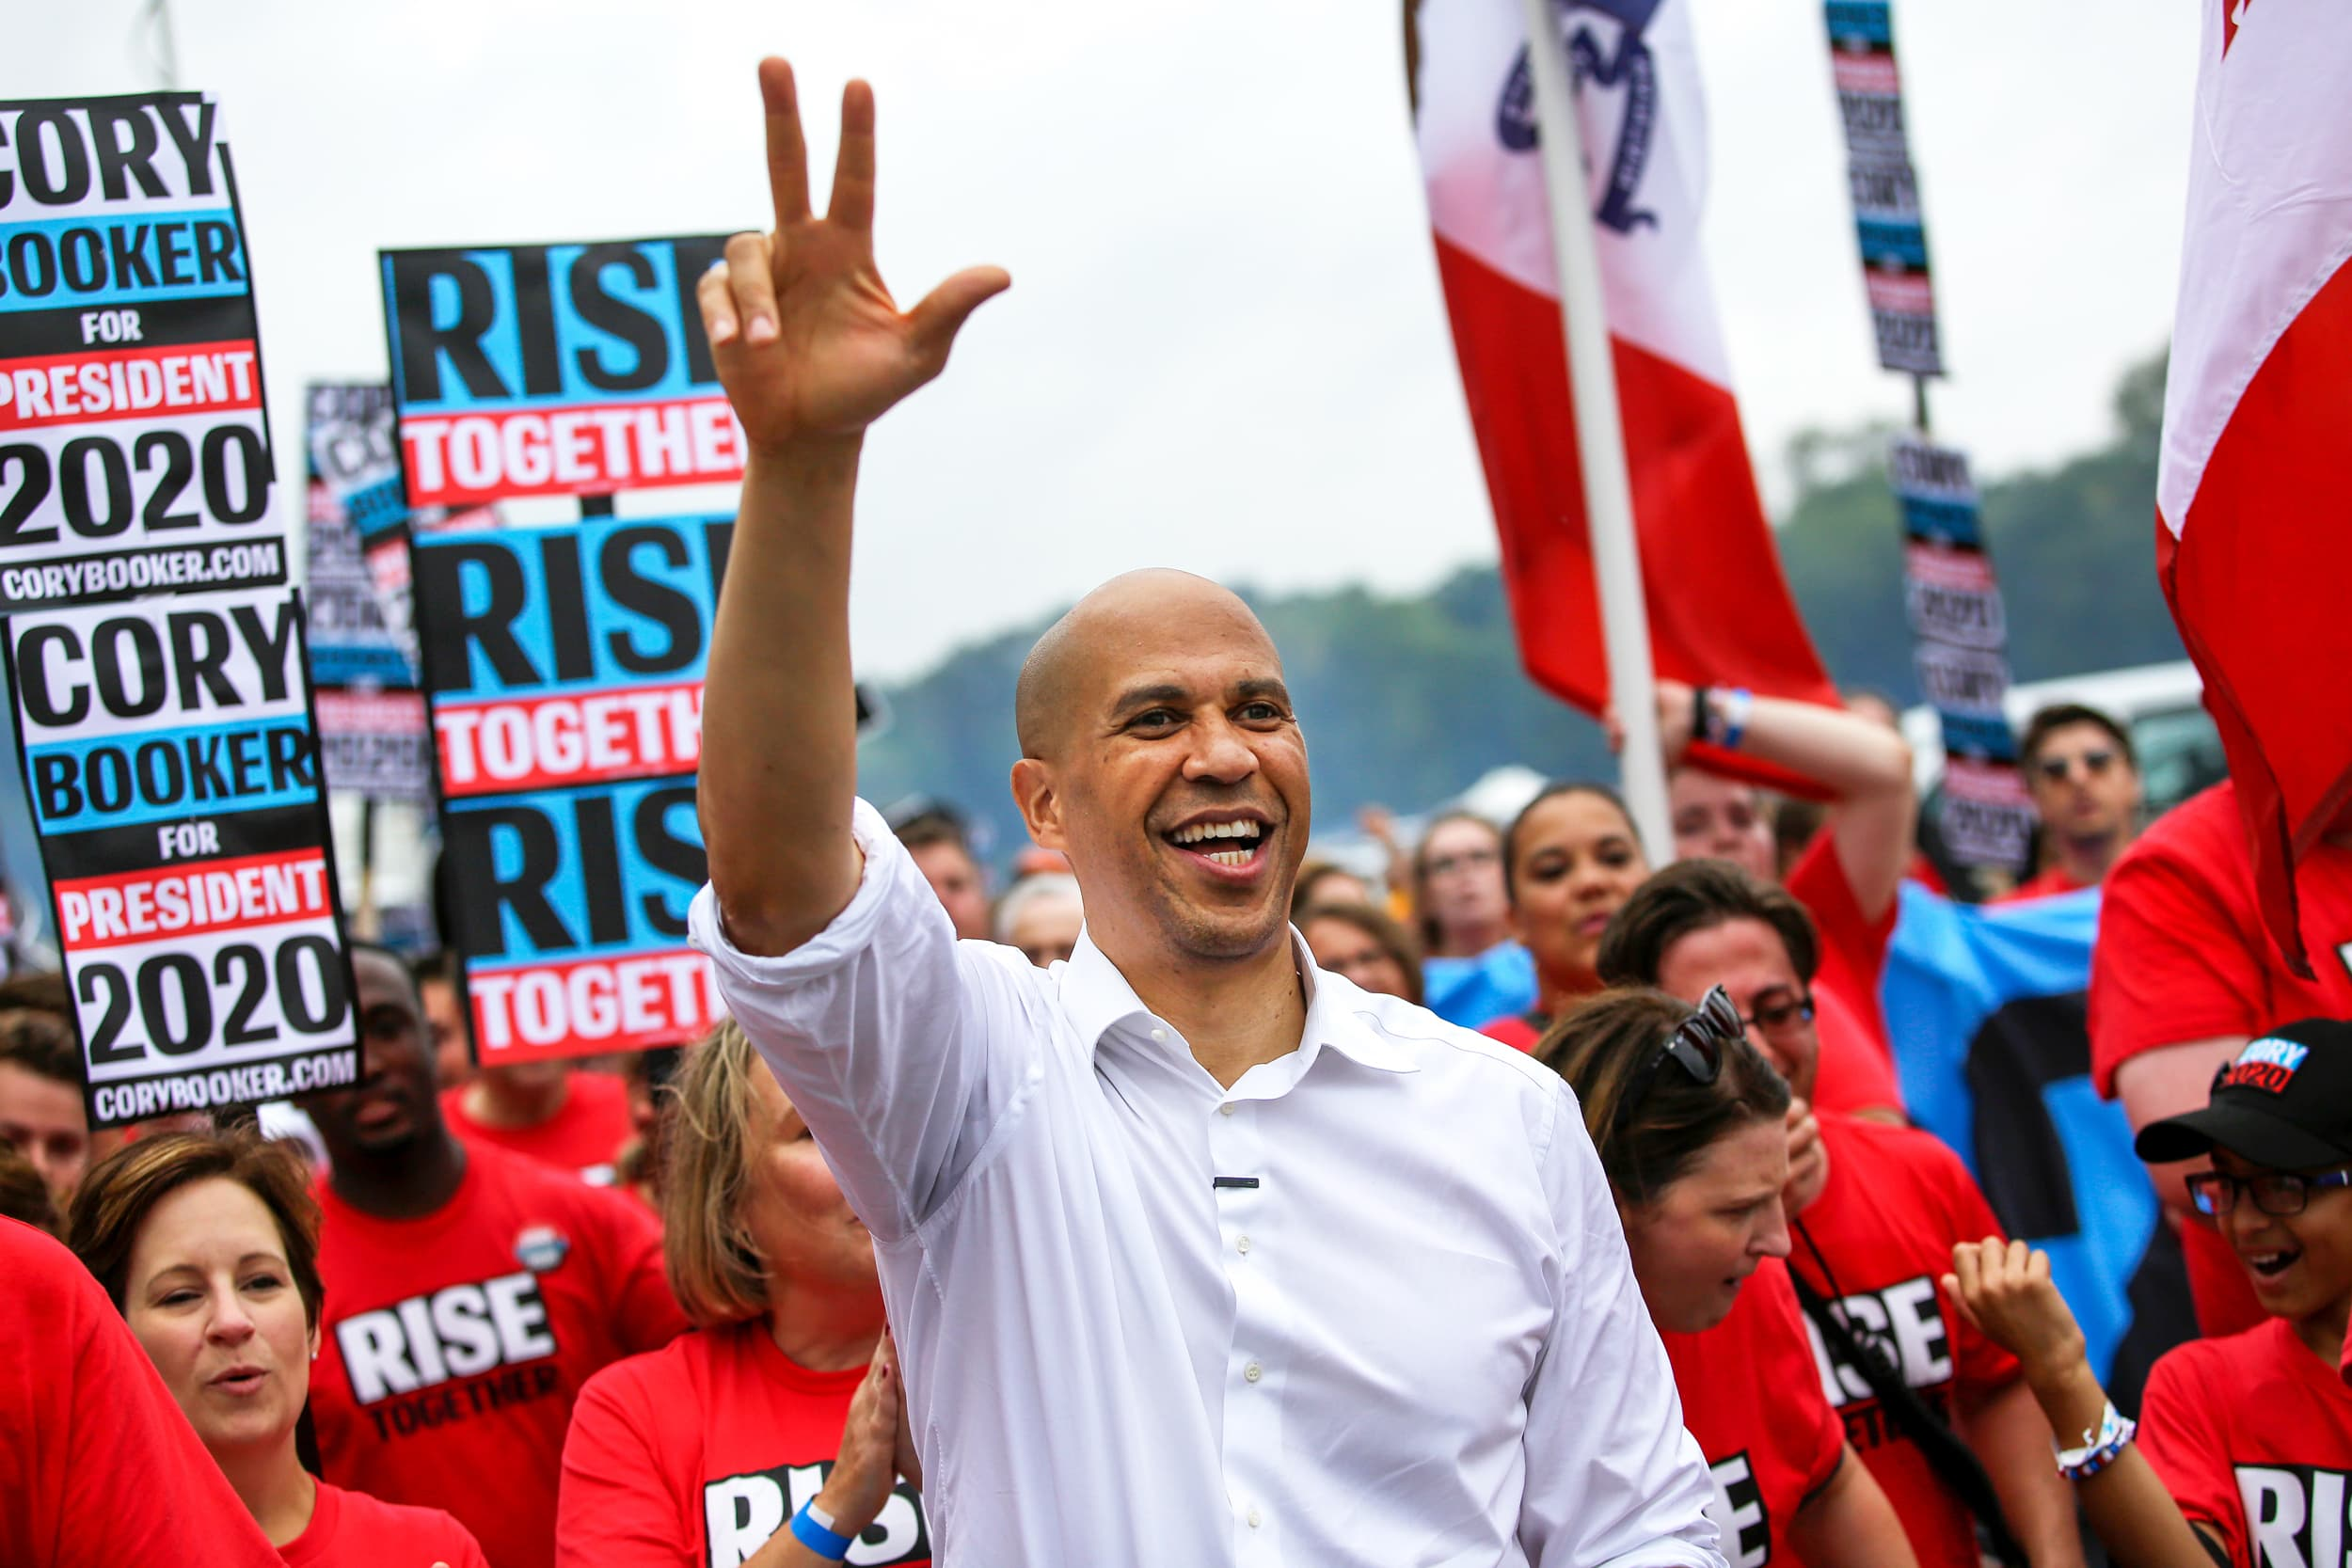 Cory Booker raises over $6 million in the third quarter after threatening to drop out of the 2020 race